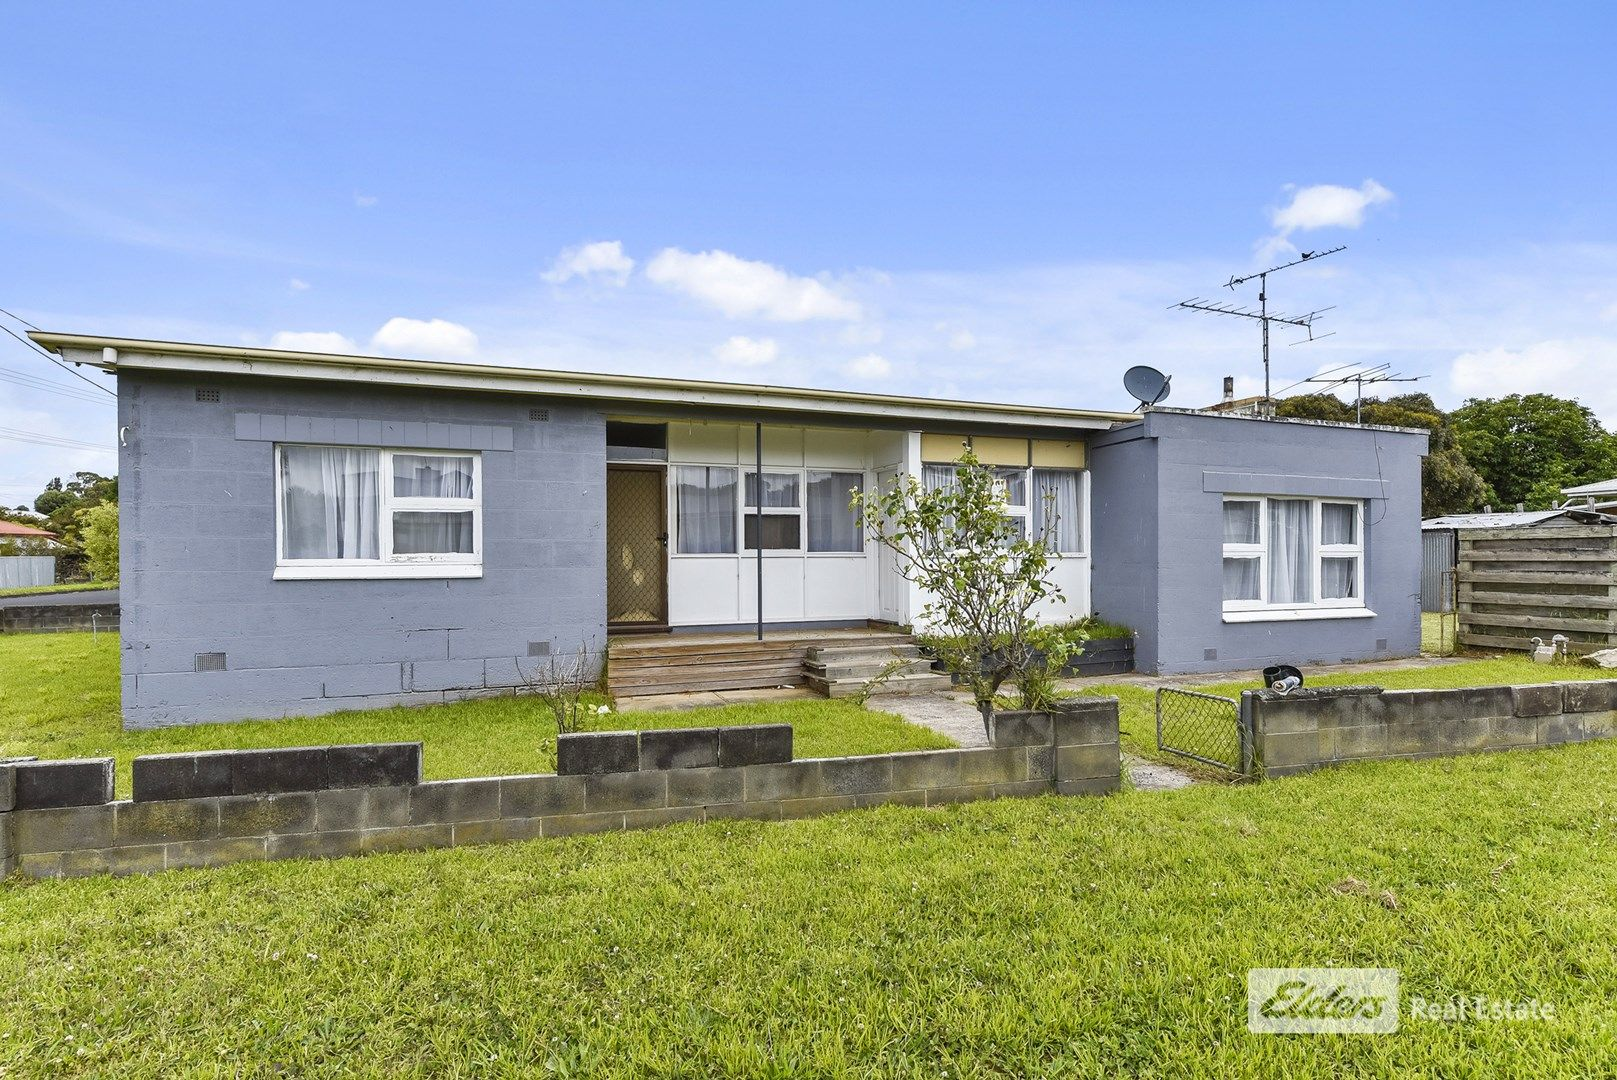 14 GRIFFITHS STREET, Mount Gambier SA 5290, Image 0